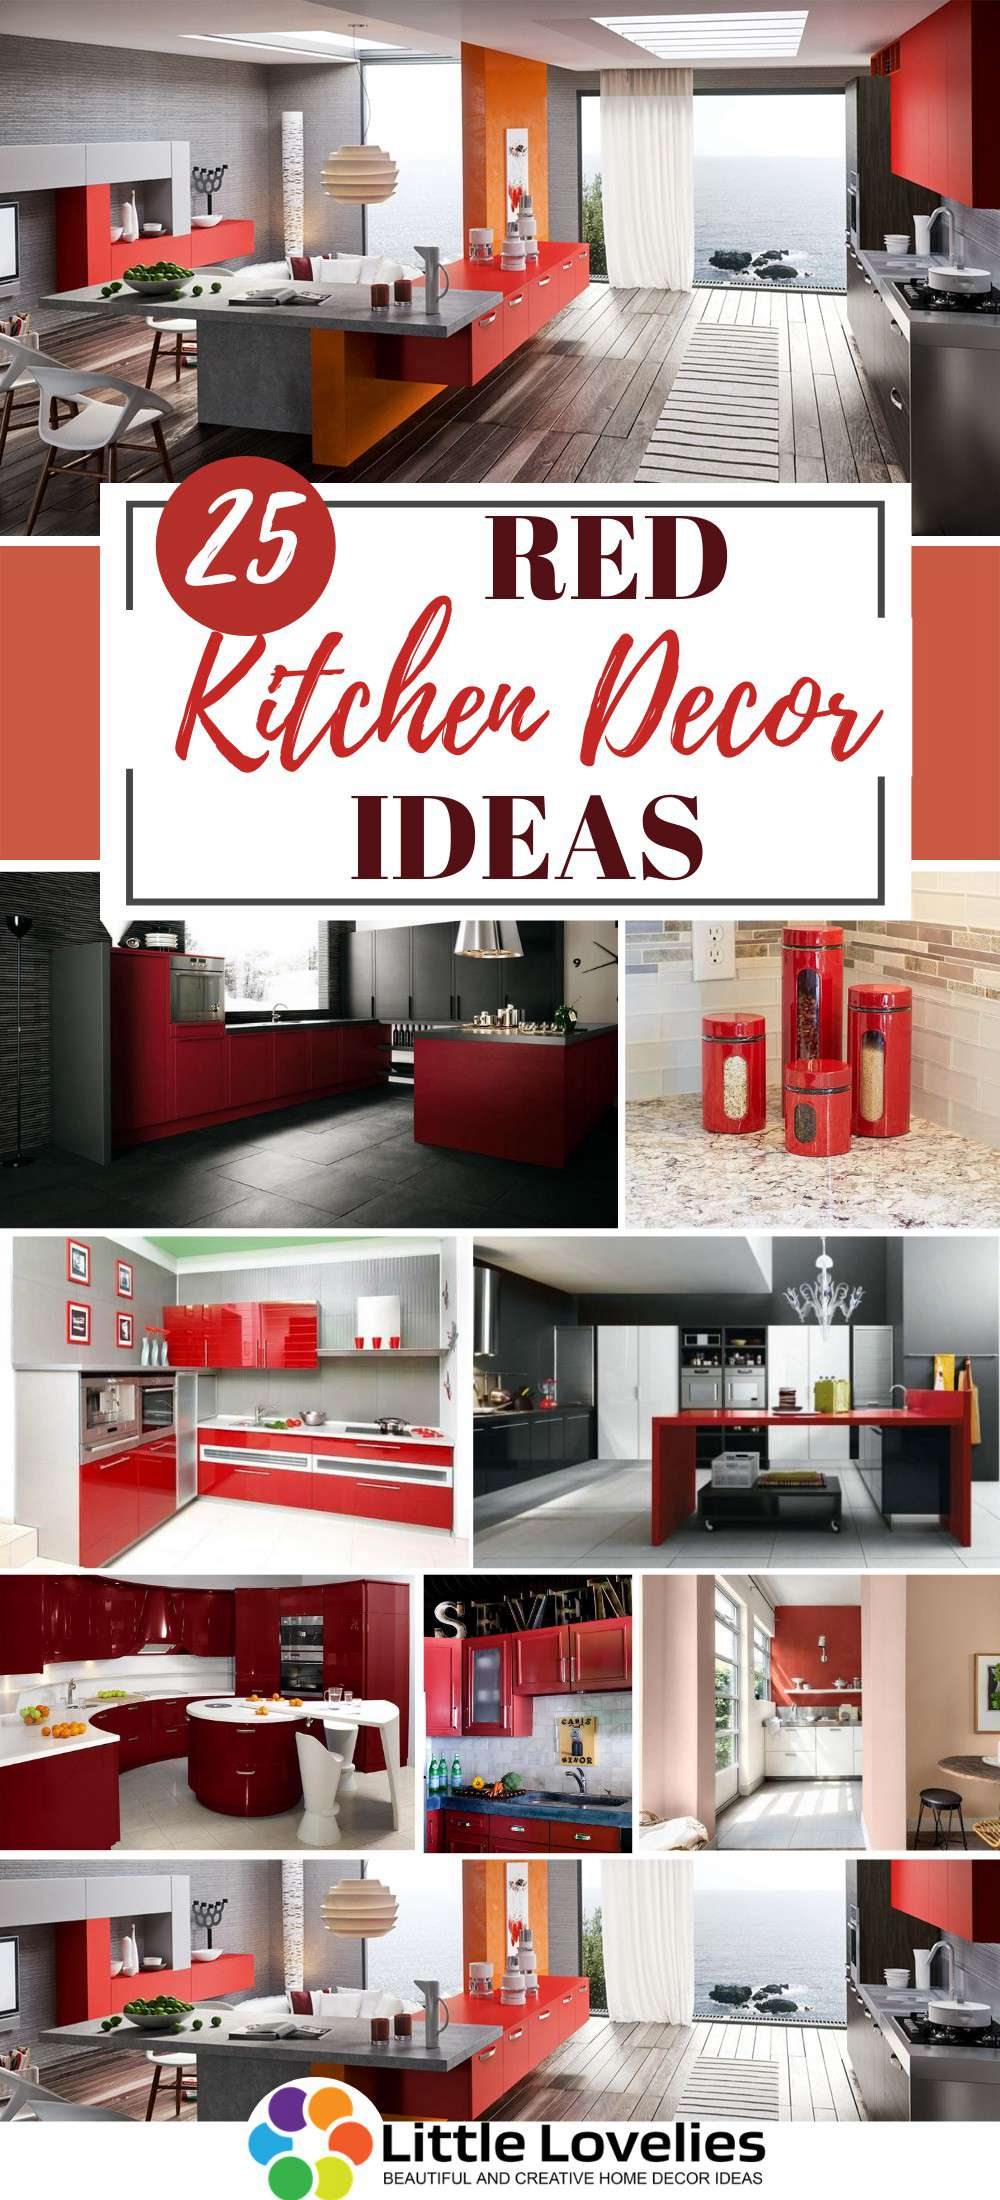 25 Red Kitchen Decor Ideas Decorating Tips For Red Colored Kitchens